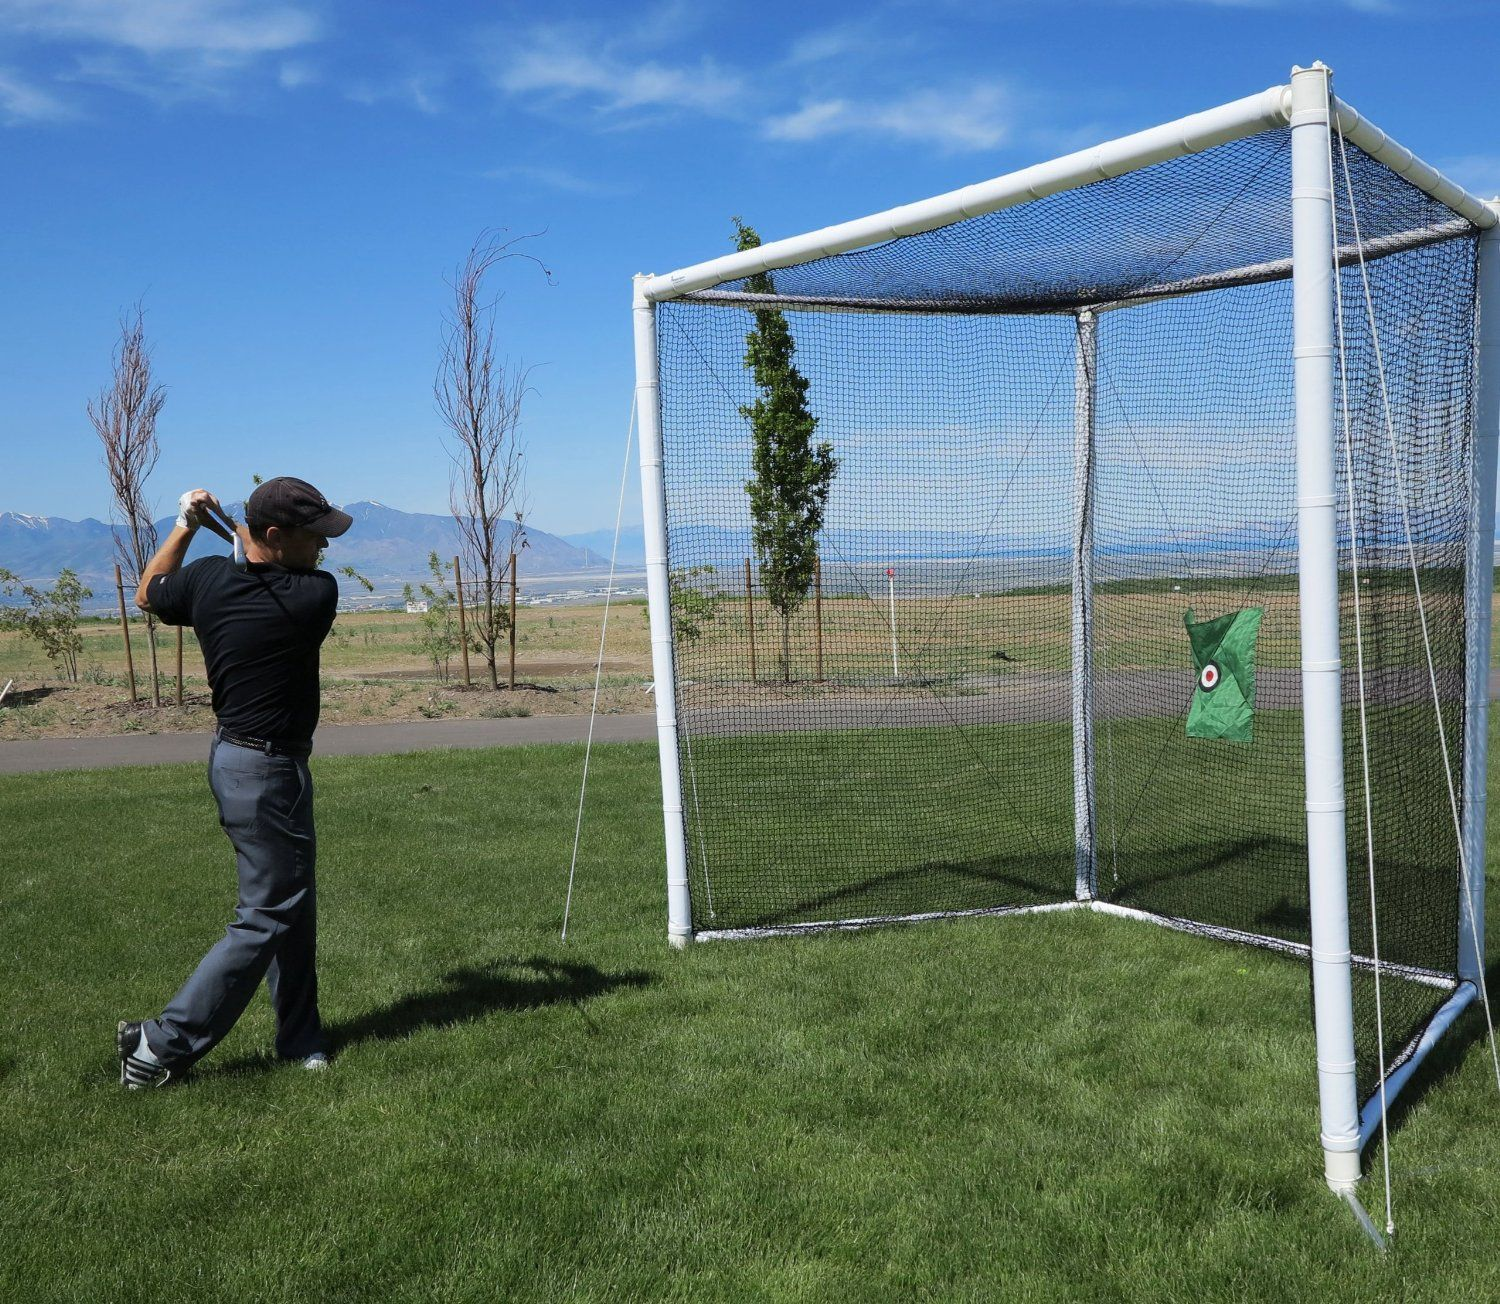 Backyard Driving Range turn your backyard into a driving range with this full size